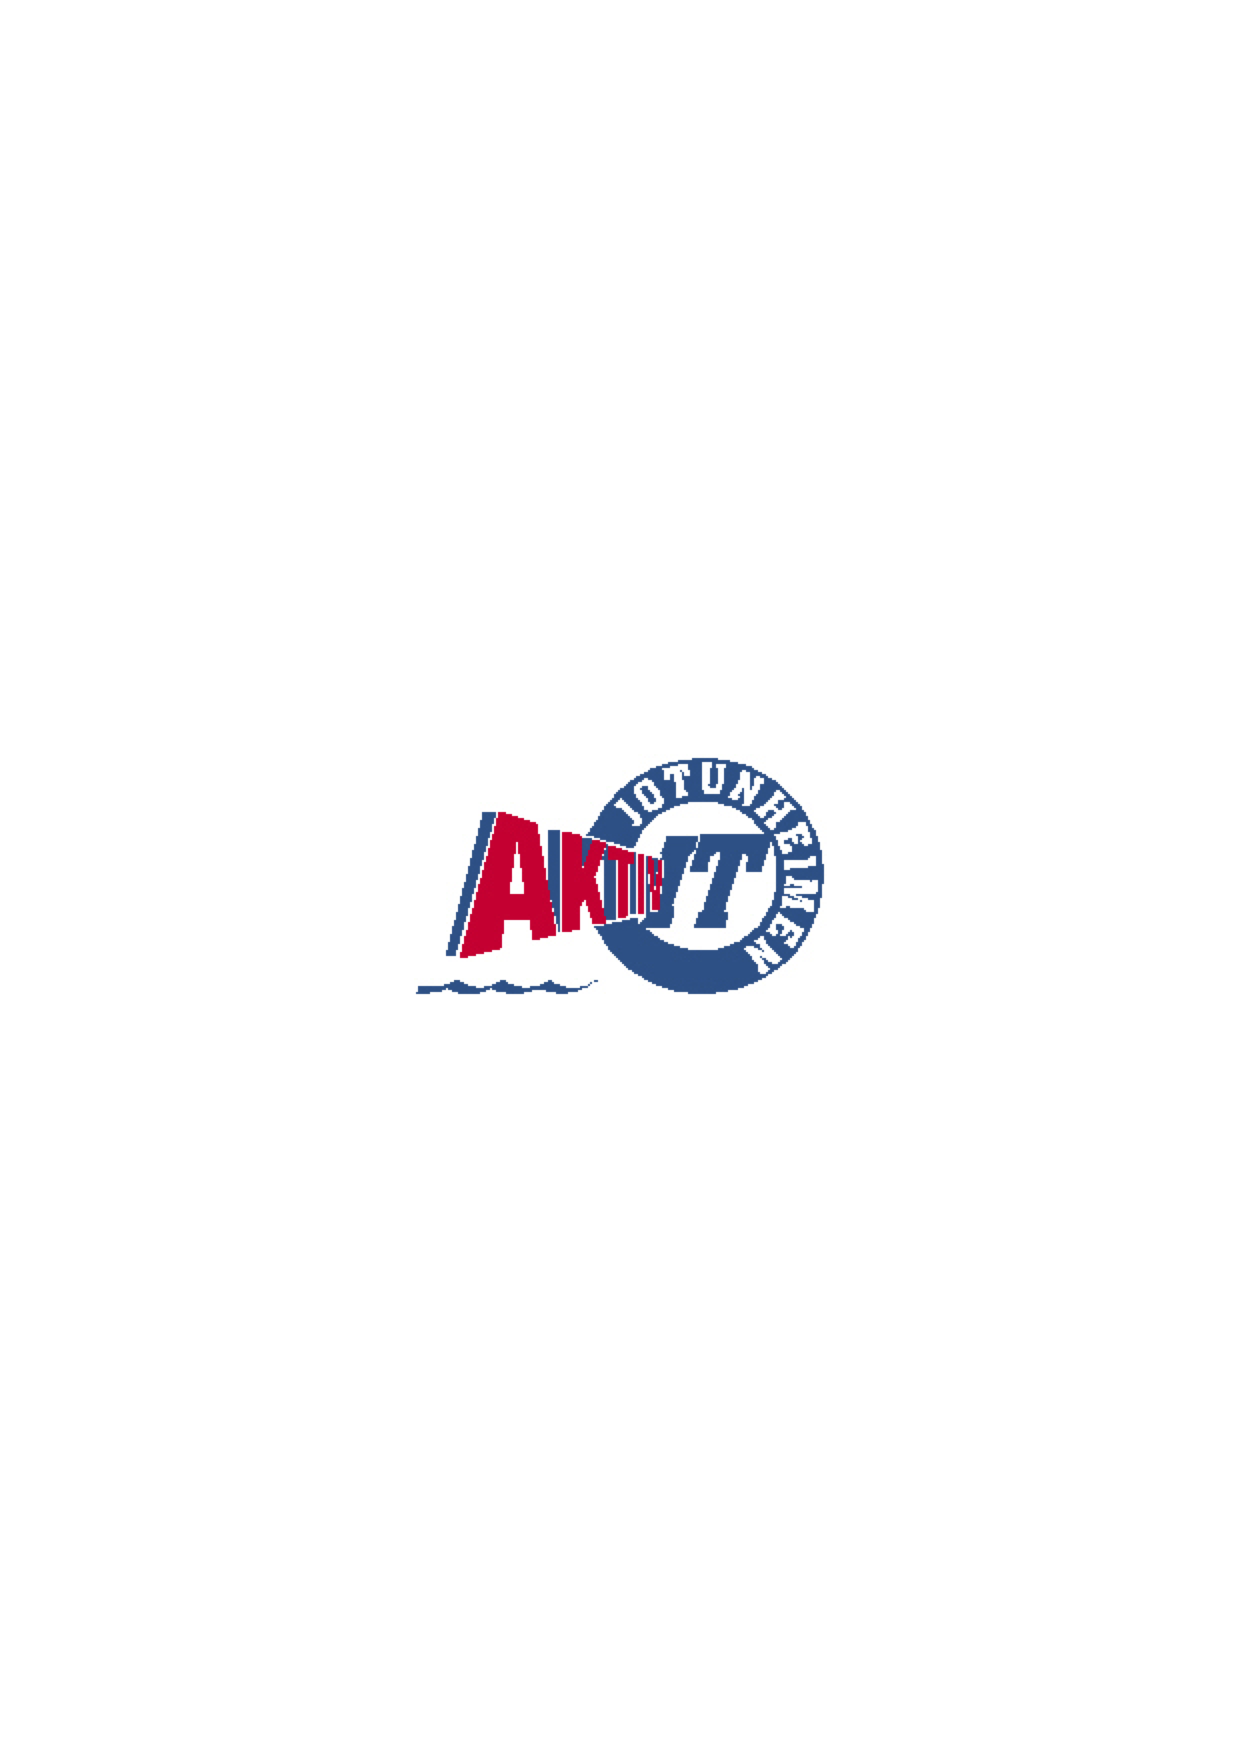 LOGO aktiv it (1).png